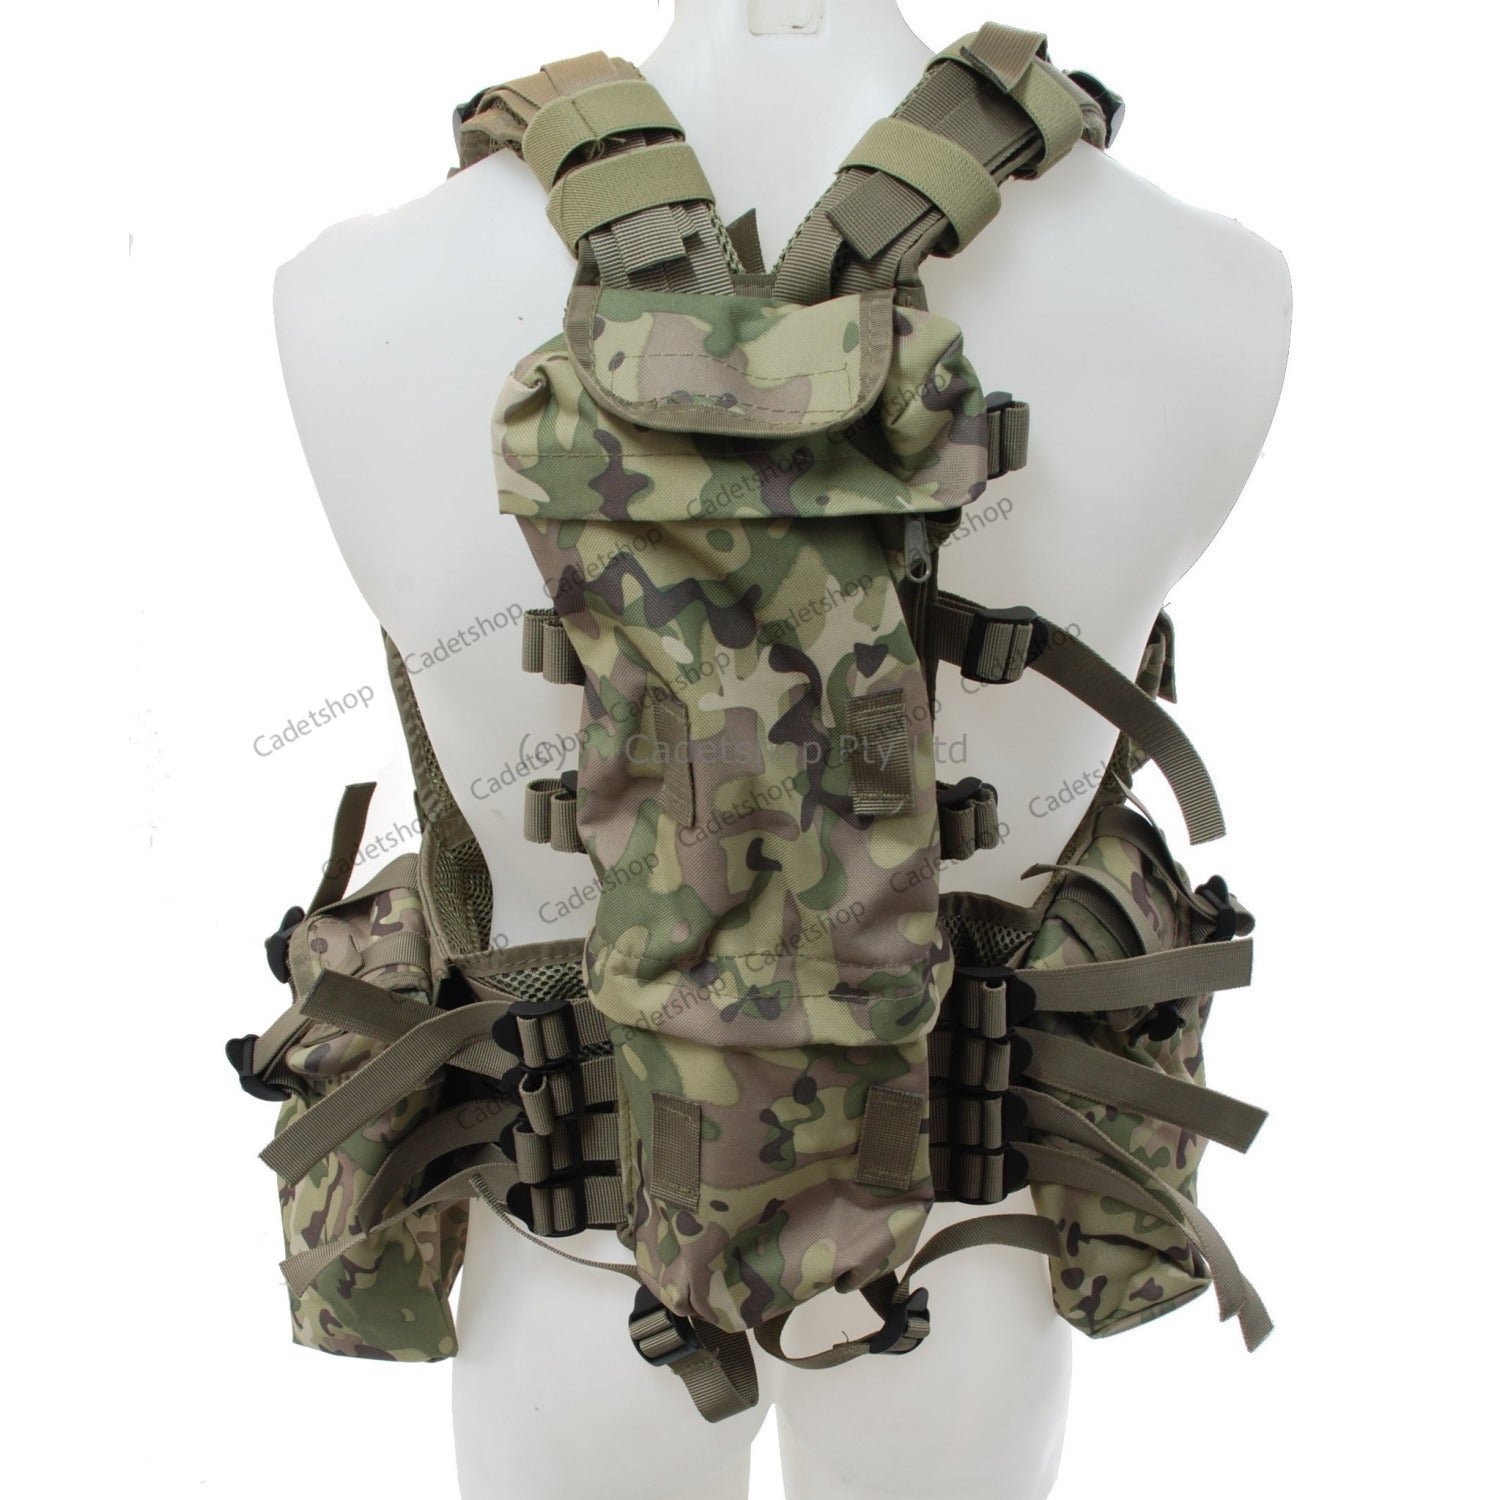 mfh tactical  MFH Tactical Vest Harness Operations Camouflage - Cadetshop